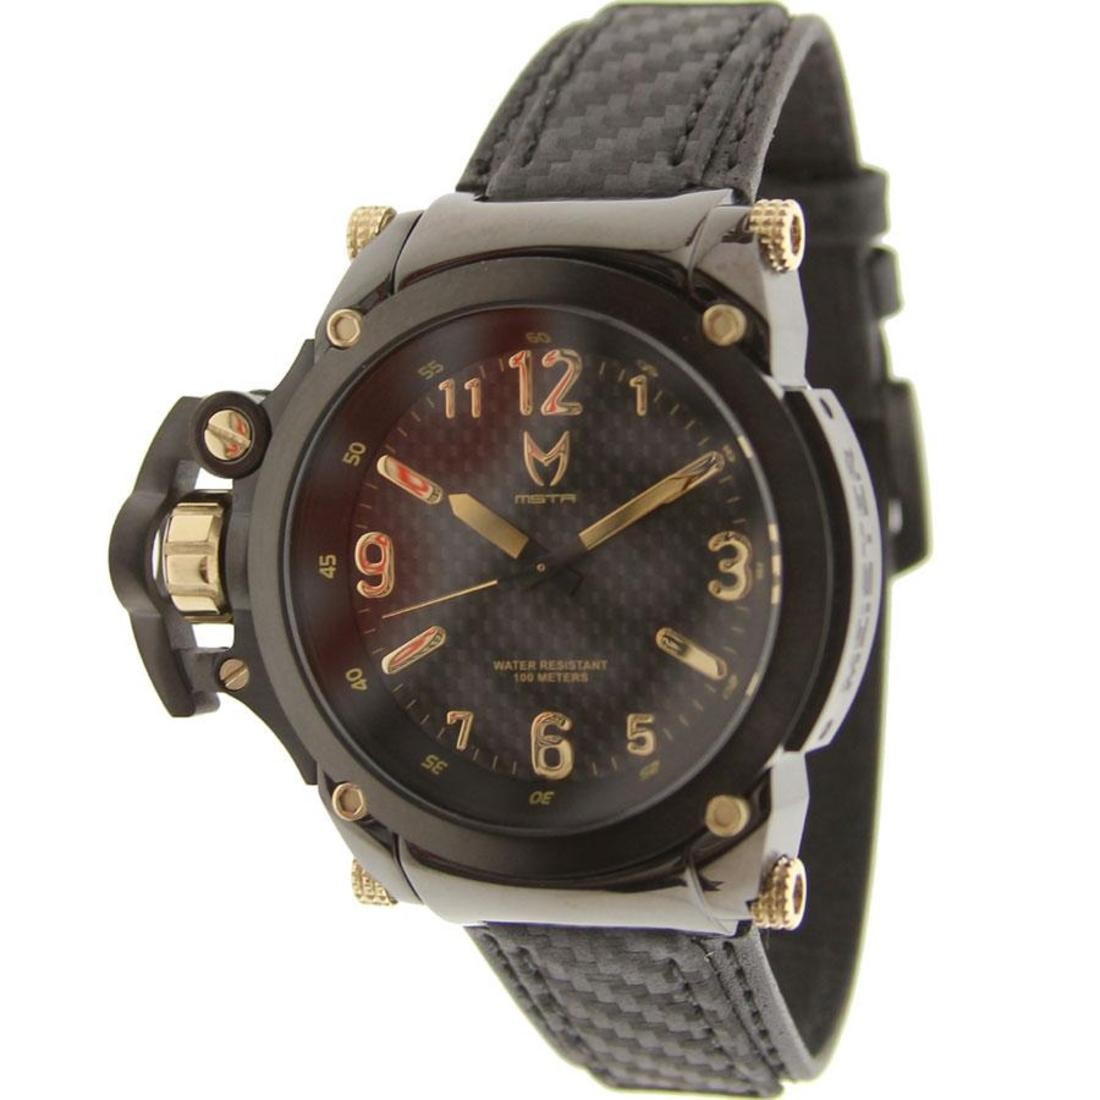 Meister Commander Watch With Carbon Fiber Band (champagne gold)